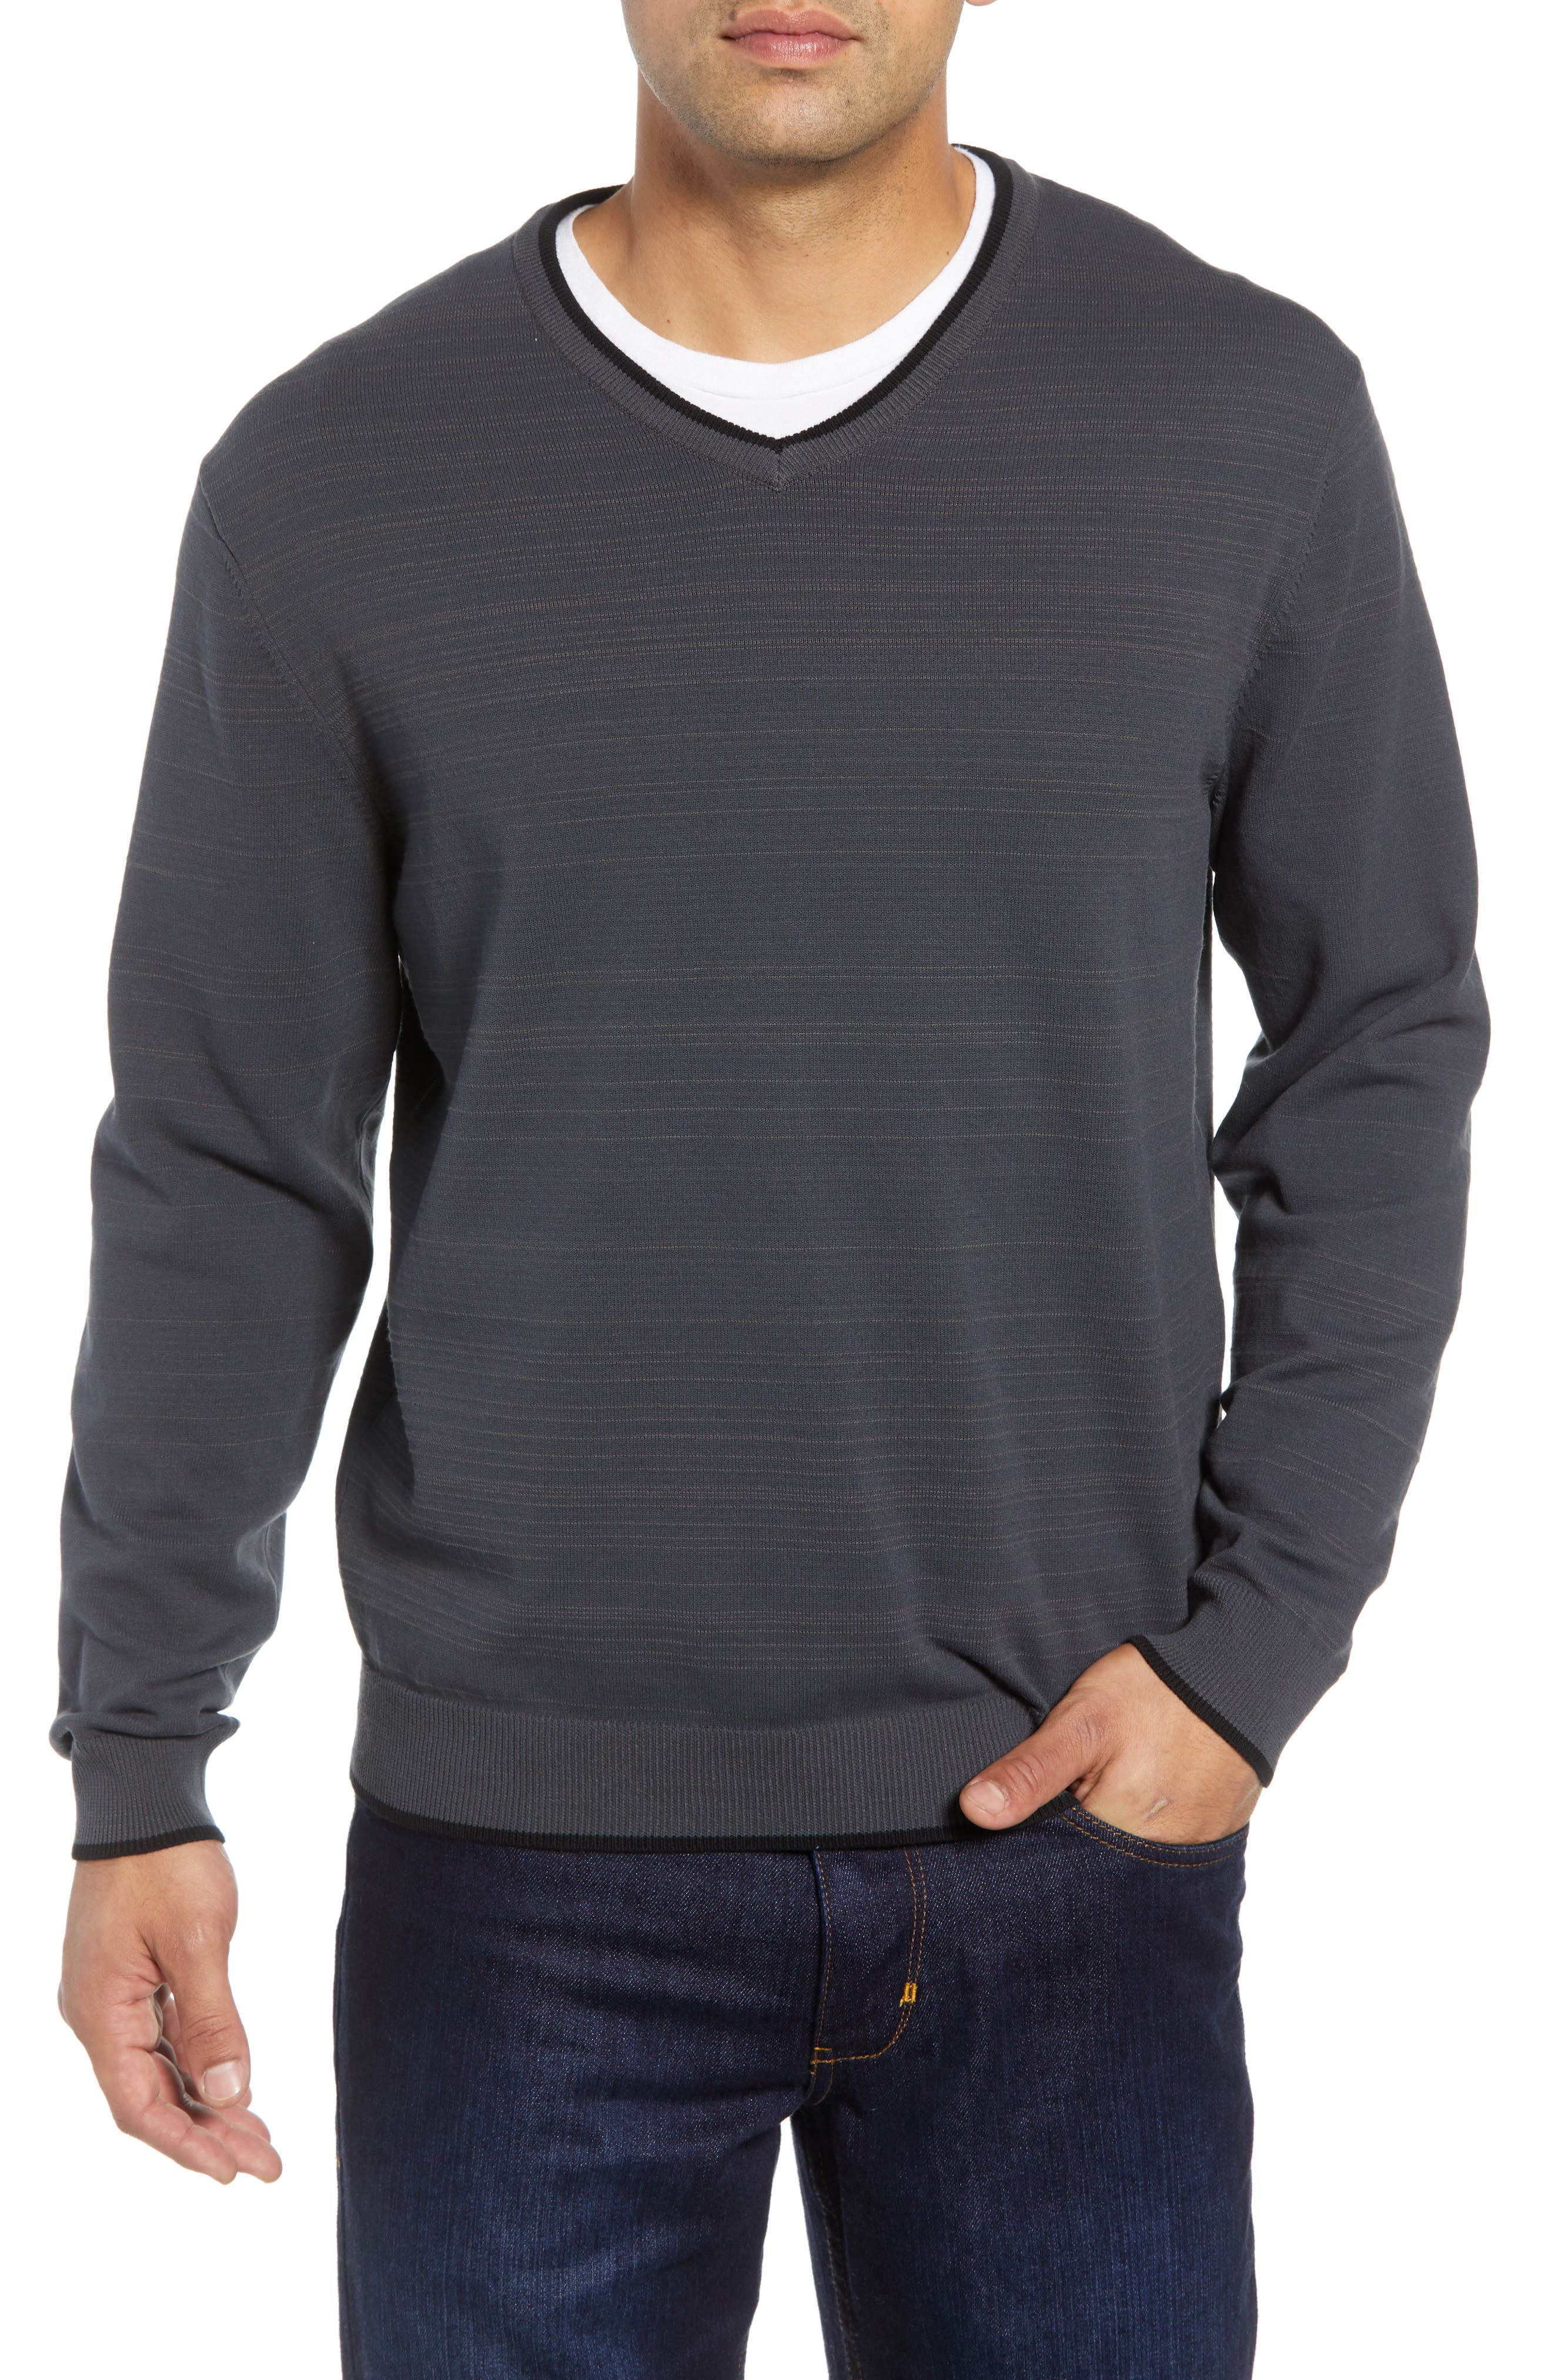 CUTTER & BUCK,                             Impact V-Neck Sweater,                             Main thumbnail 1, color,                             010